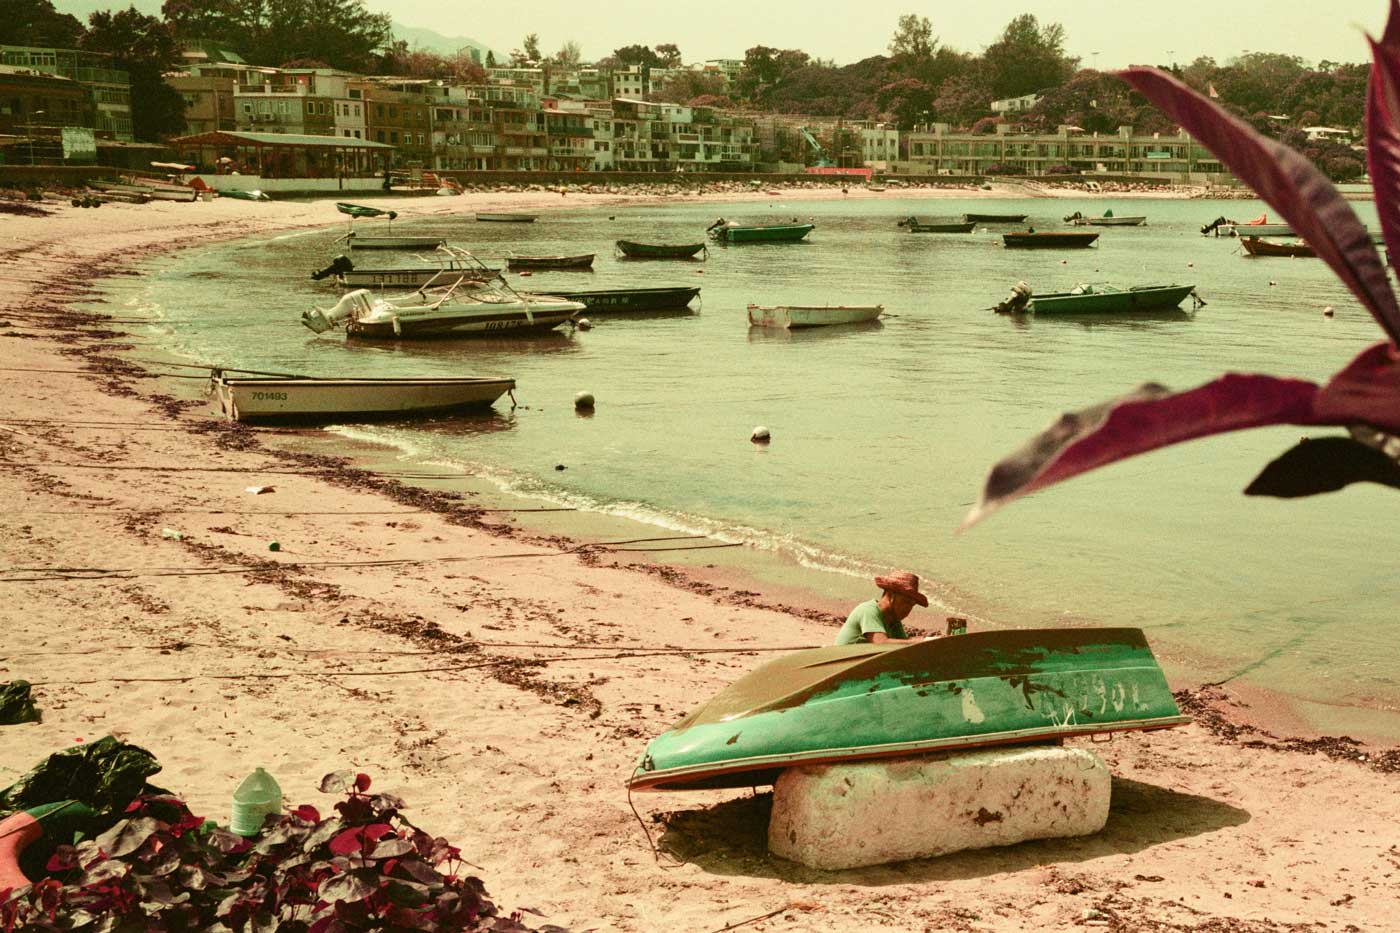 Lomochrome-purple-film-review-pengchau-hk-hong-kong-hasselblad-xpan-sunny-day-aerochrome-replica